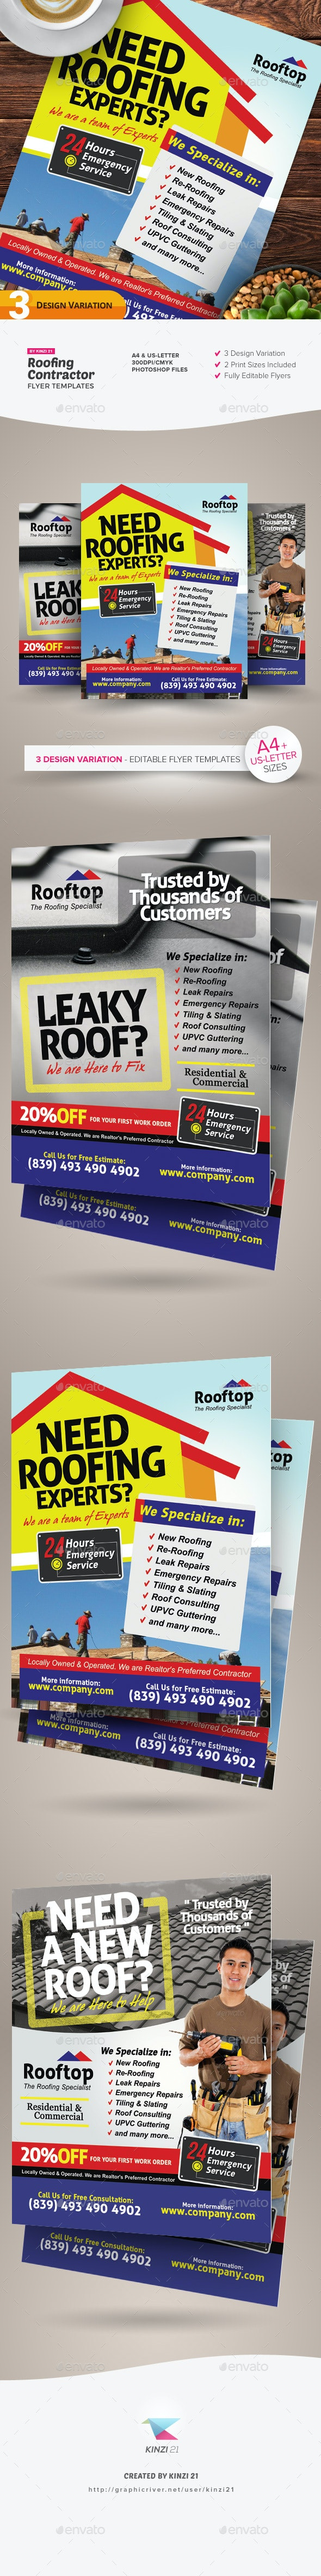 Roofing Contractor Flyer Templates - Corporate Flyers